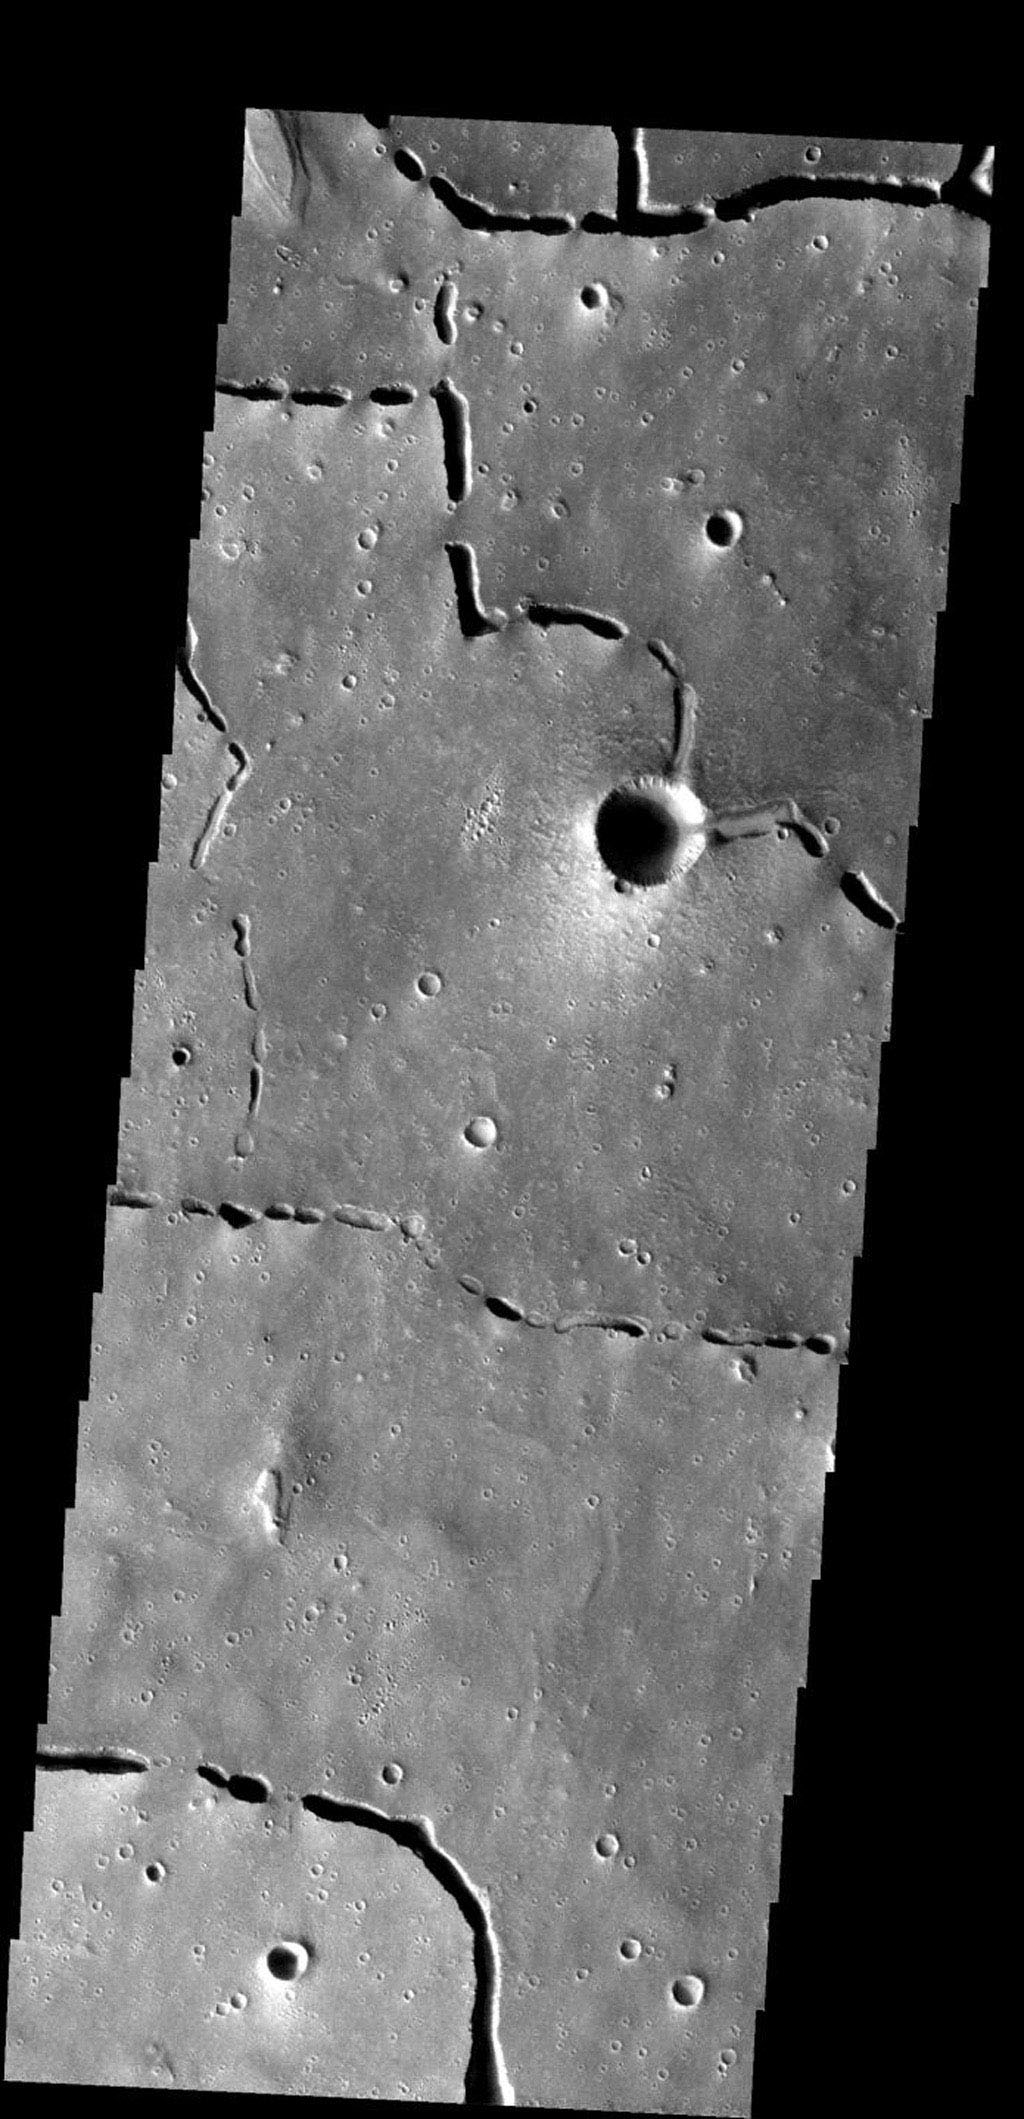 The collapse features in this images are related to lava tubes that likely originated at Elysium volcanic complex on Mars. This image was taken by NASA's Mars 2001 Odyssey spacecraft.